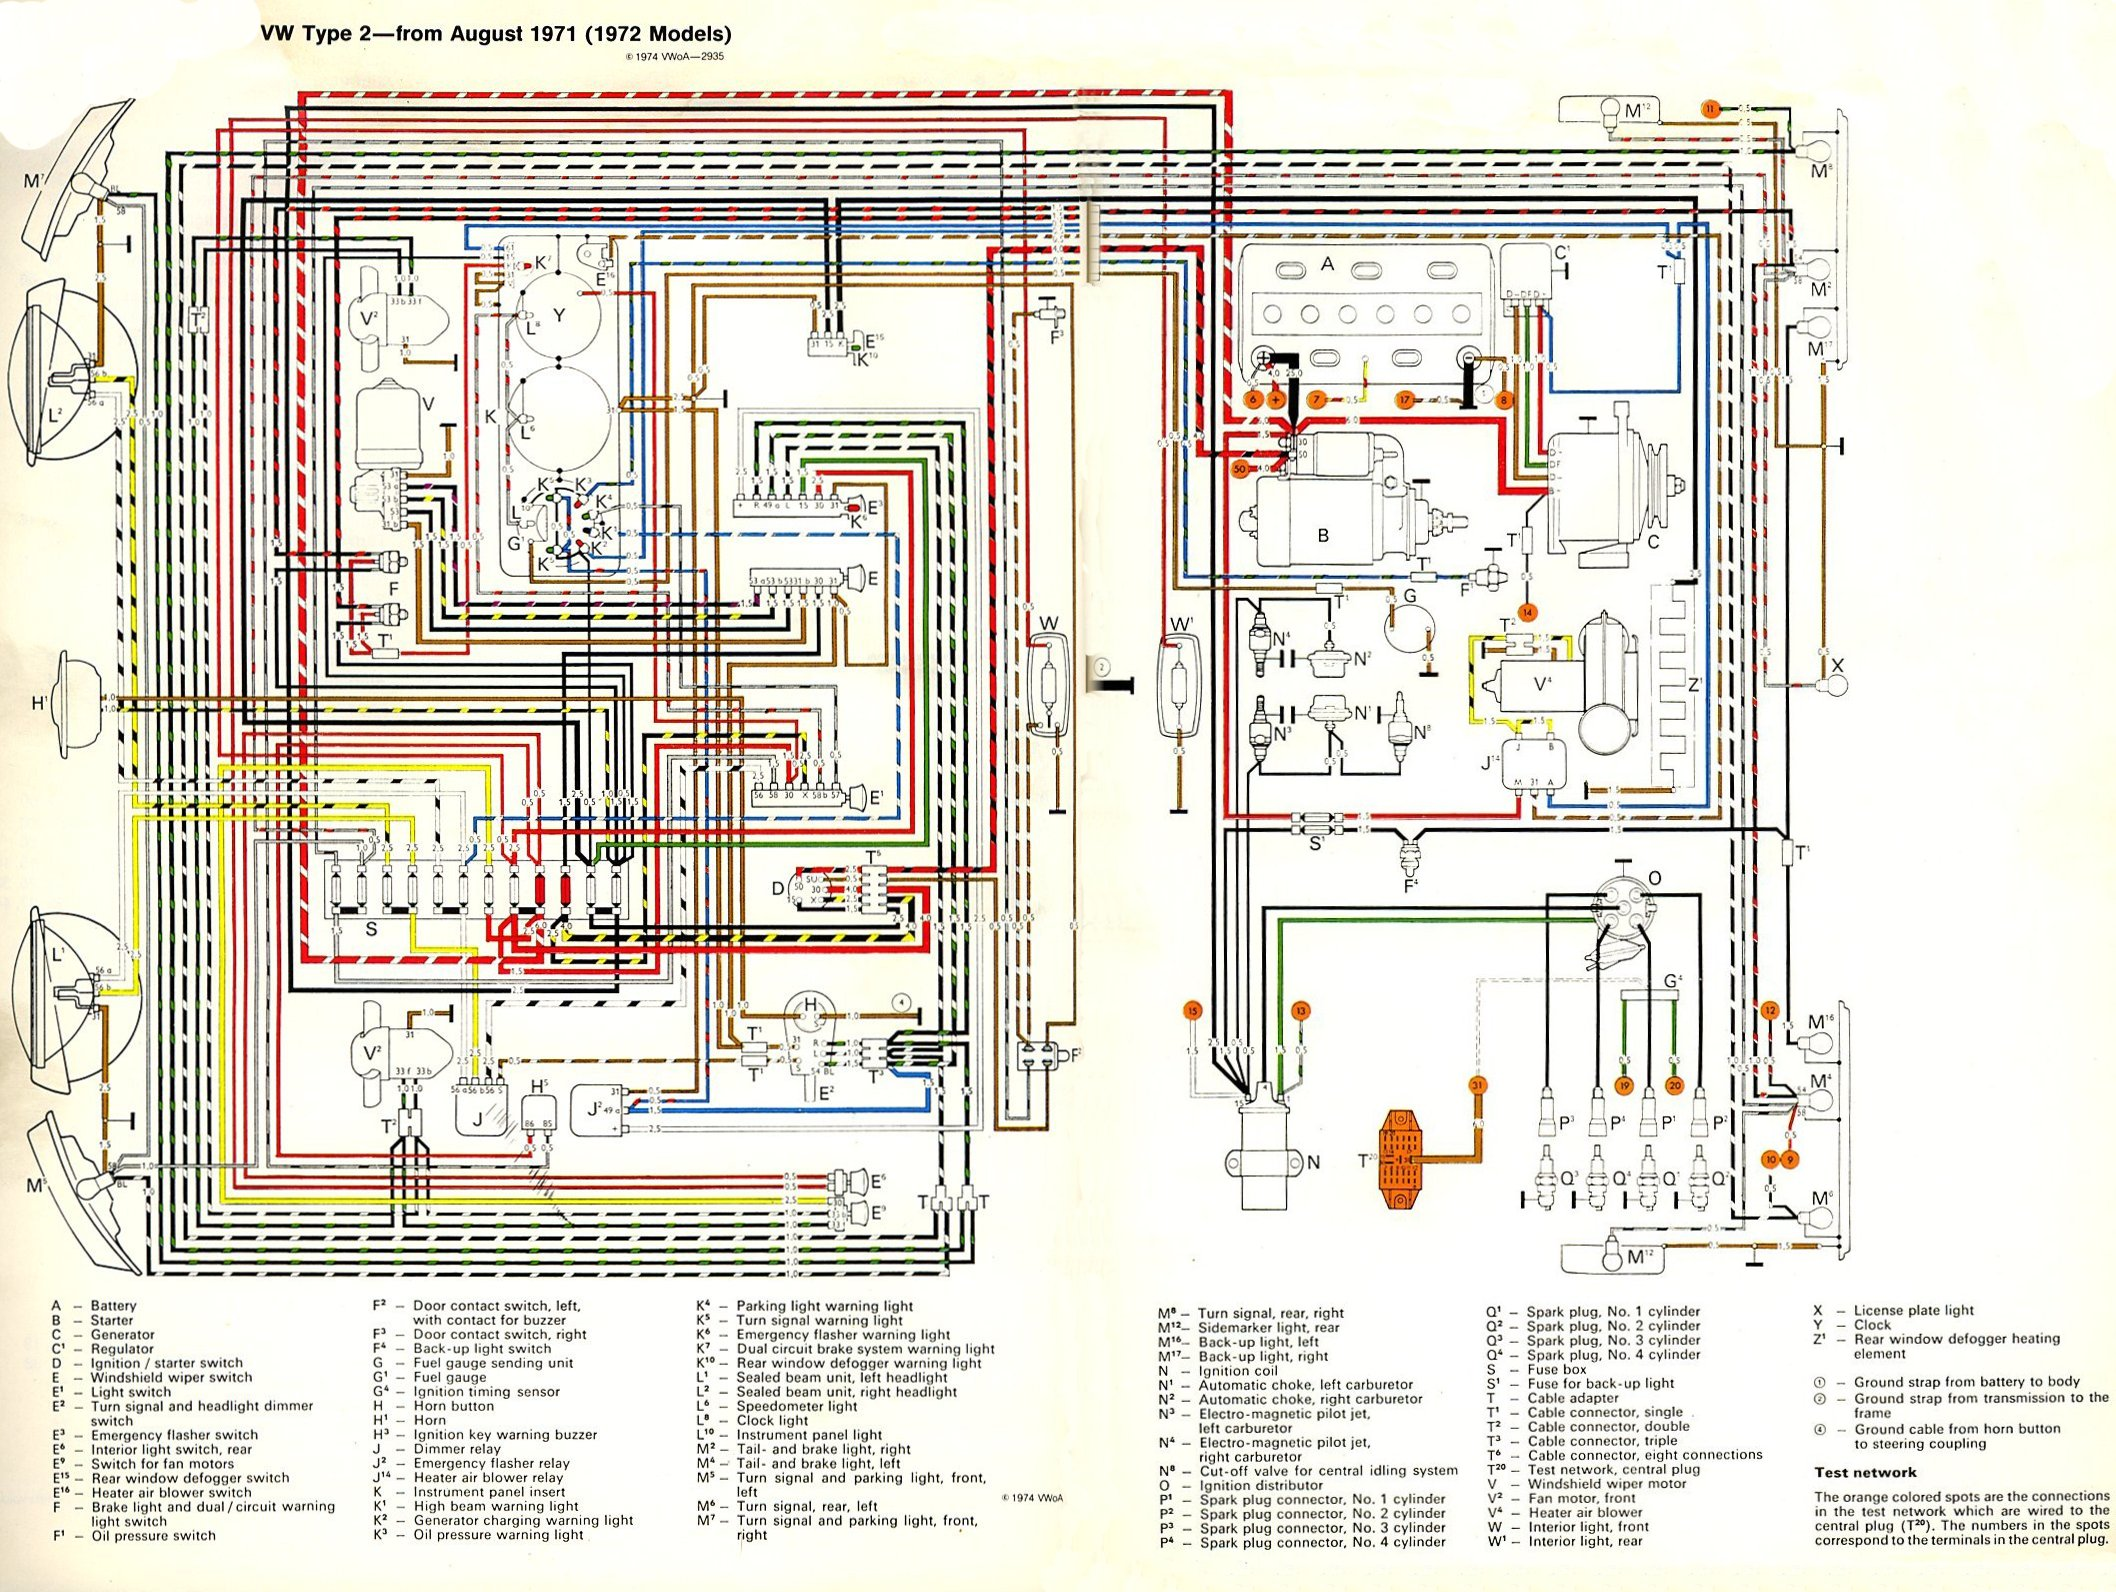 bus_1972_wiring wiring diagram for 1971 vw bus readingrat net 1971 vw bus wiring diagram at nearapp.co